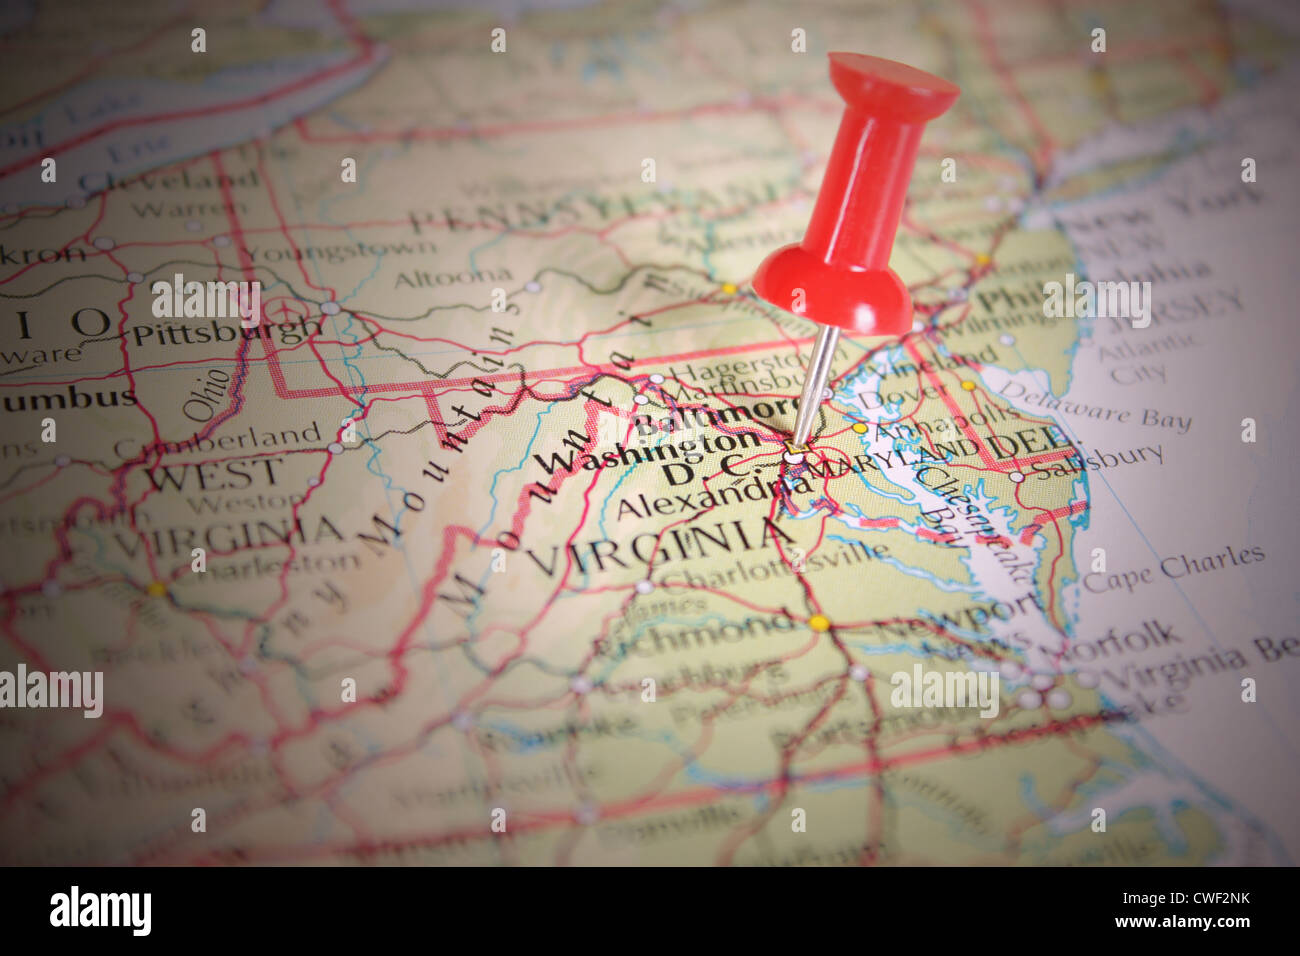 Red pin on a Map of America, Washington D.C Stock Photo ... Map Of America Washington on new york map america, hawaii map america, st. louis map america, indiana map america, idaho map america, kansas map america, north carolina map america, ohio map america,